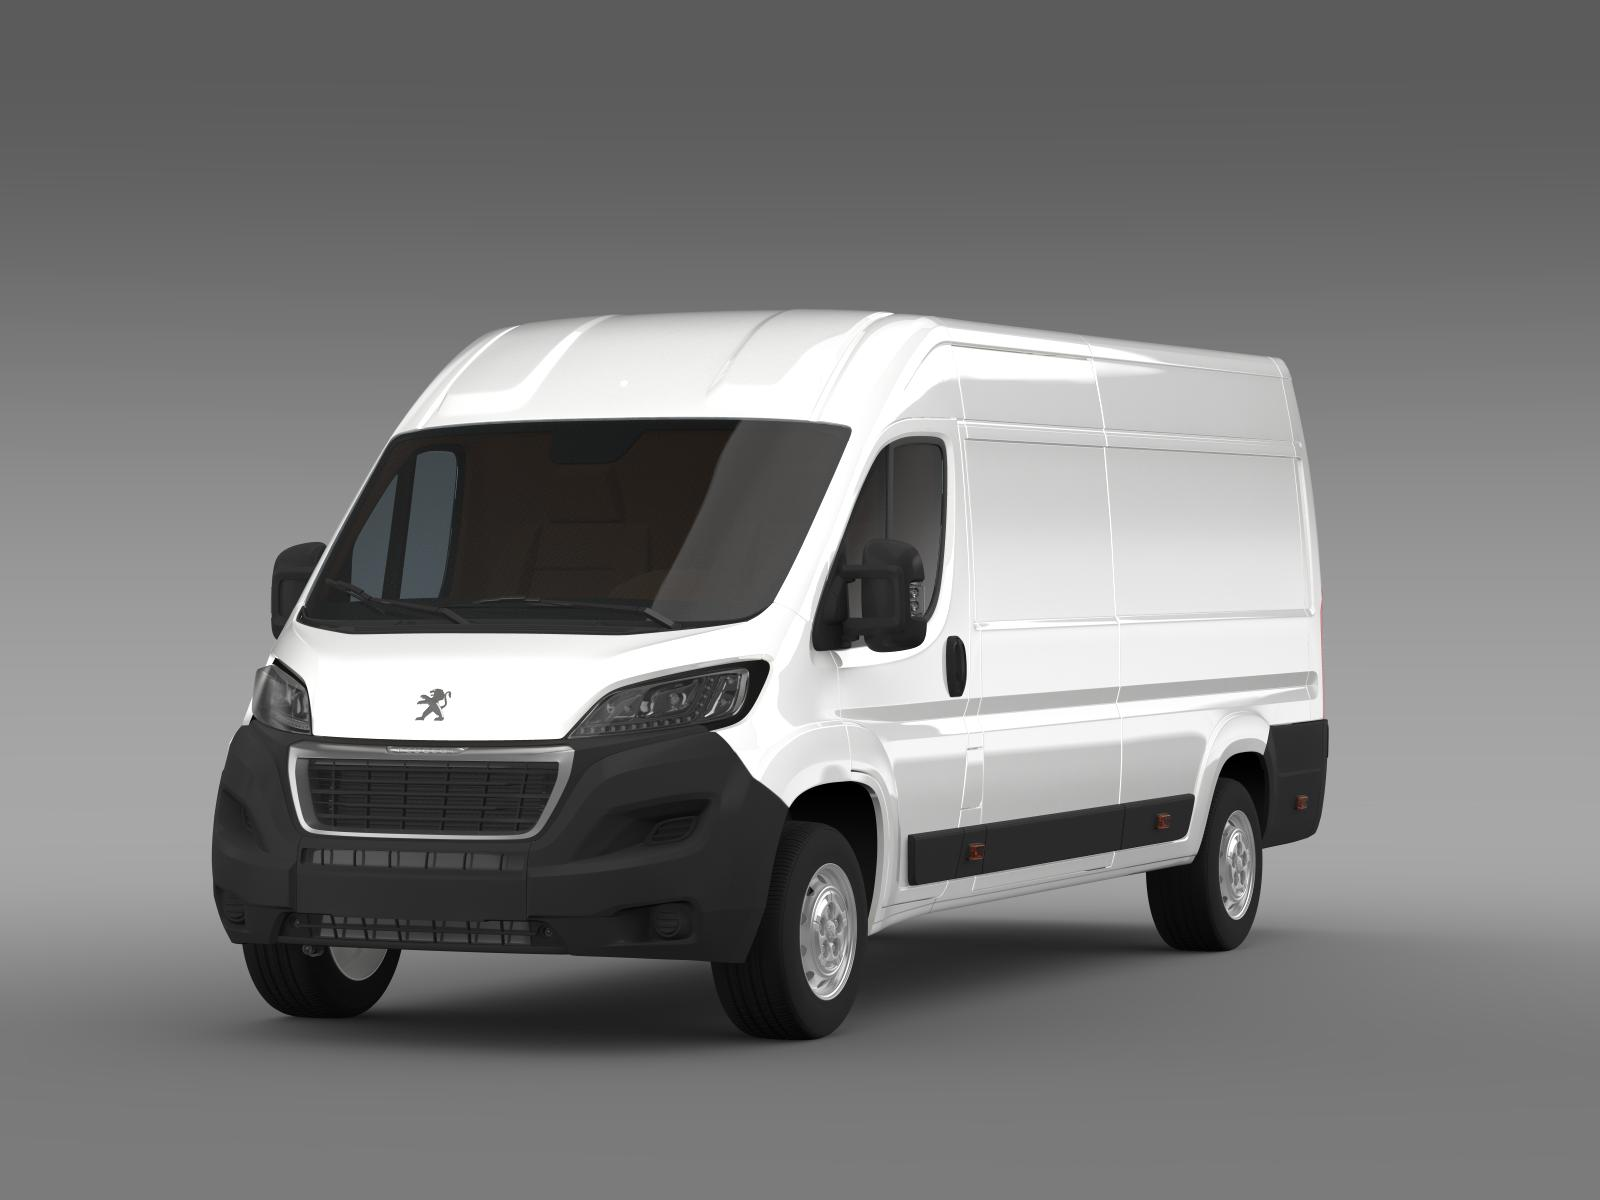 peugeot boxer van l4h2 2014 3d model. Black Bedroom Furniture Sets. Home Design Ideas